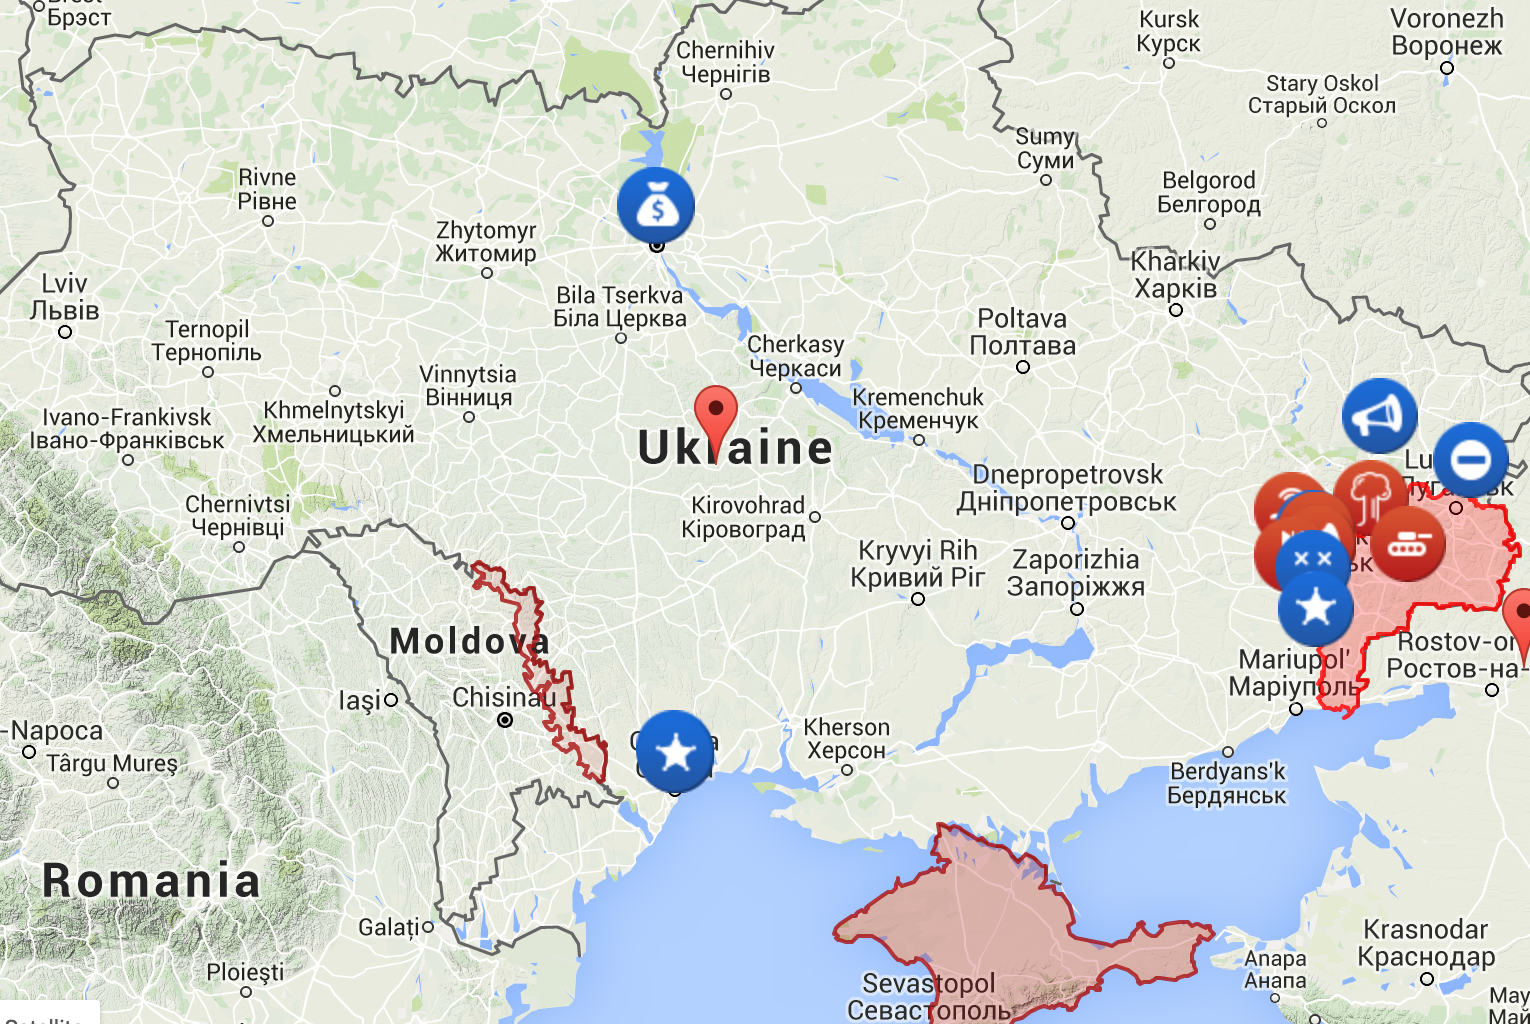 Courses for pregnant women in the Dnipropetrovsk region: a selection of sites